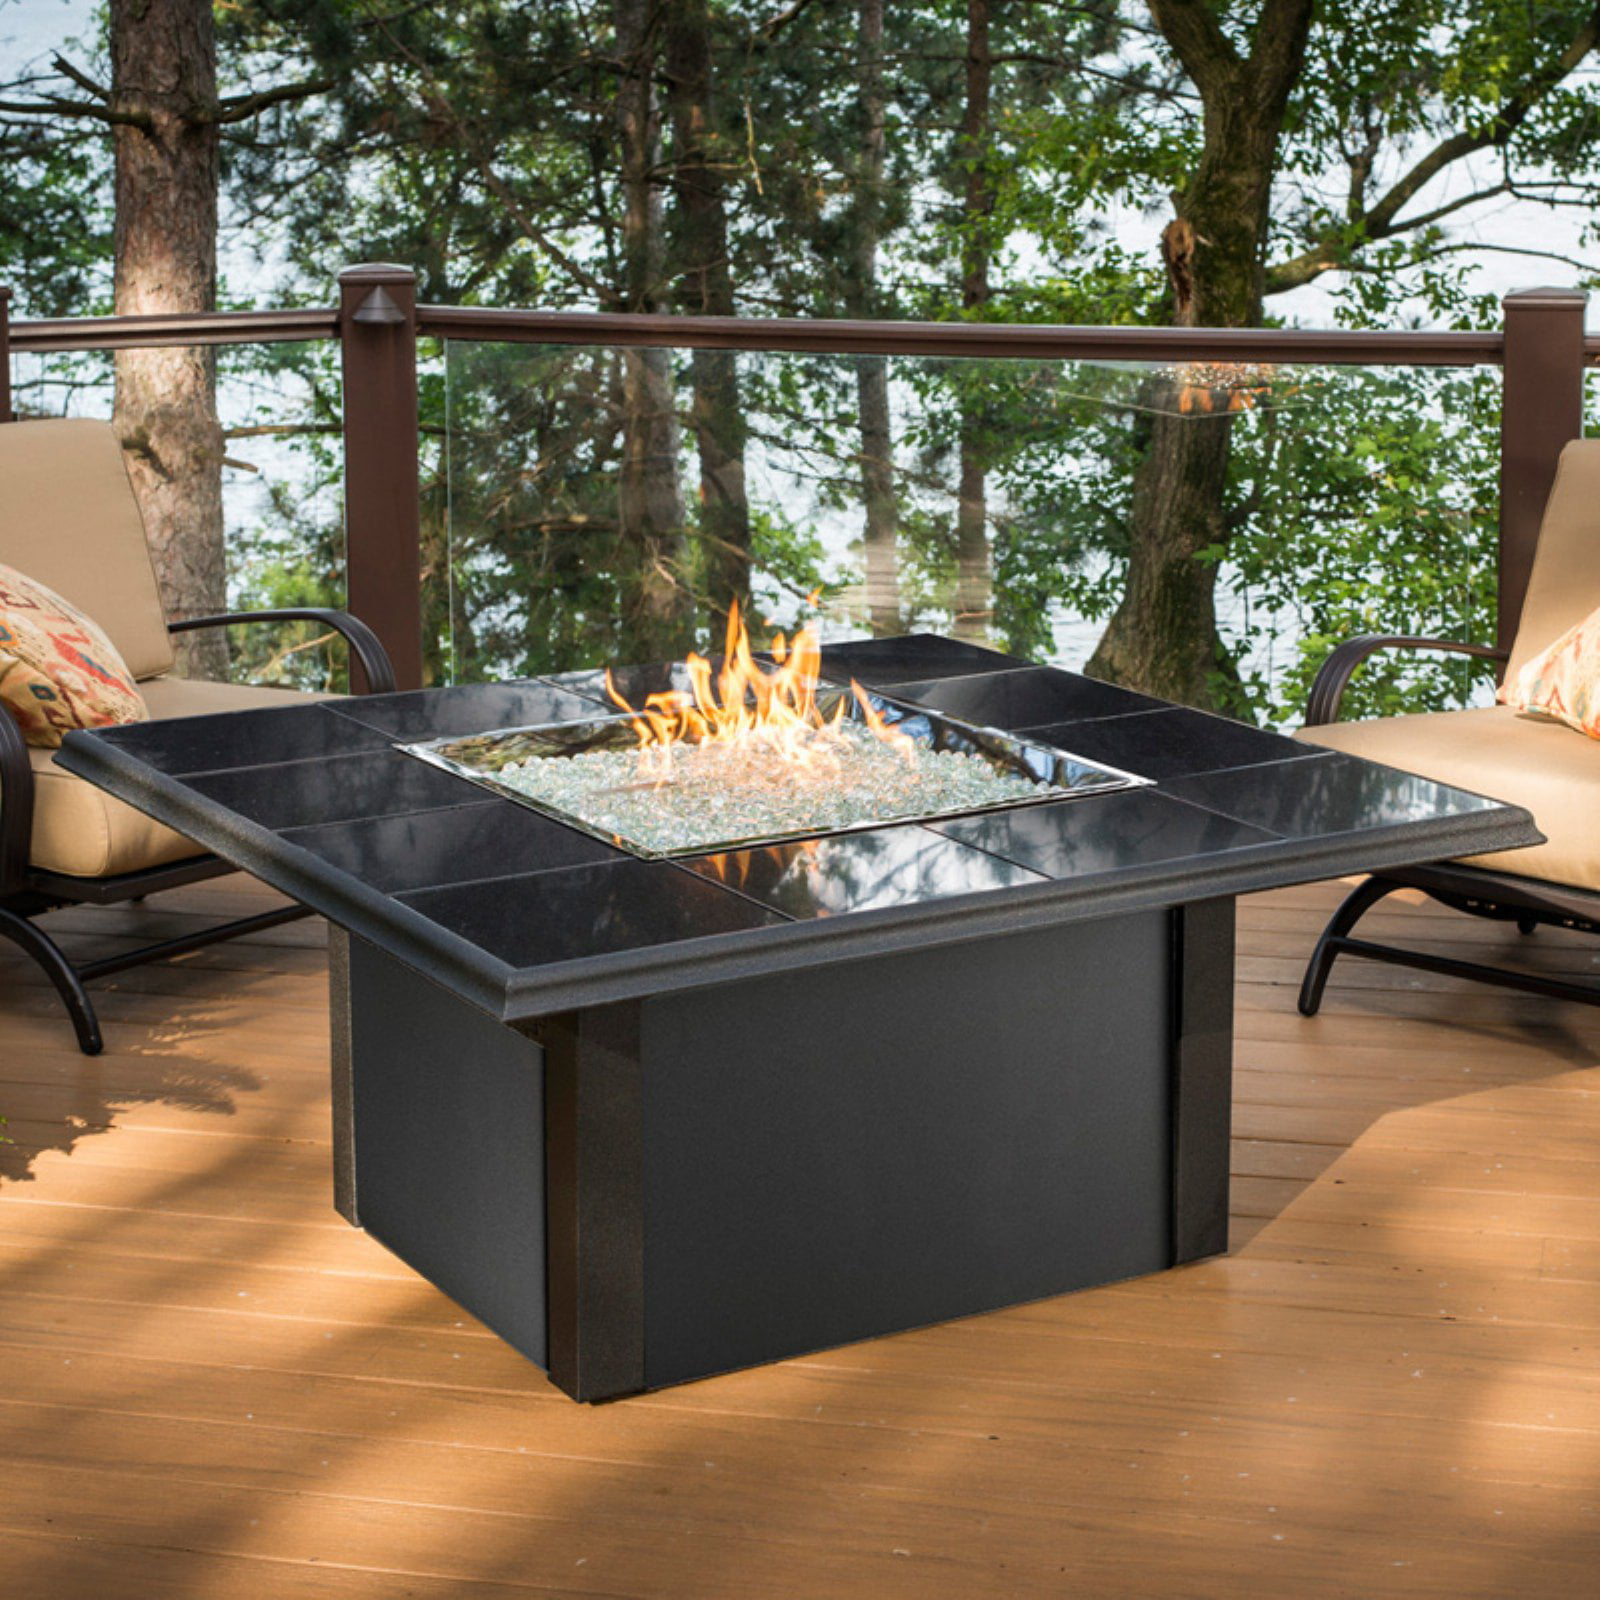 Outdoor GreatRoom Napa Valley Square Firepit Table by The Outdoor GreatRoom Company